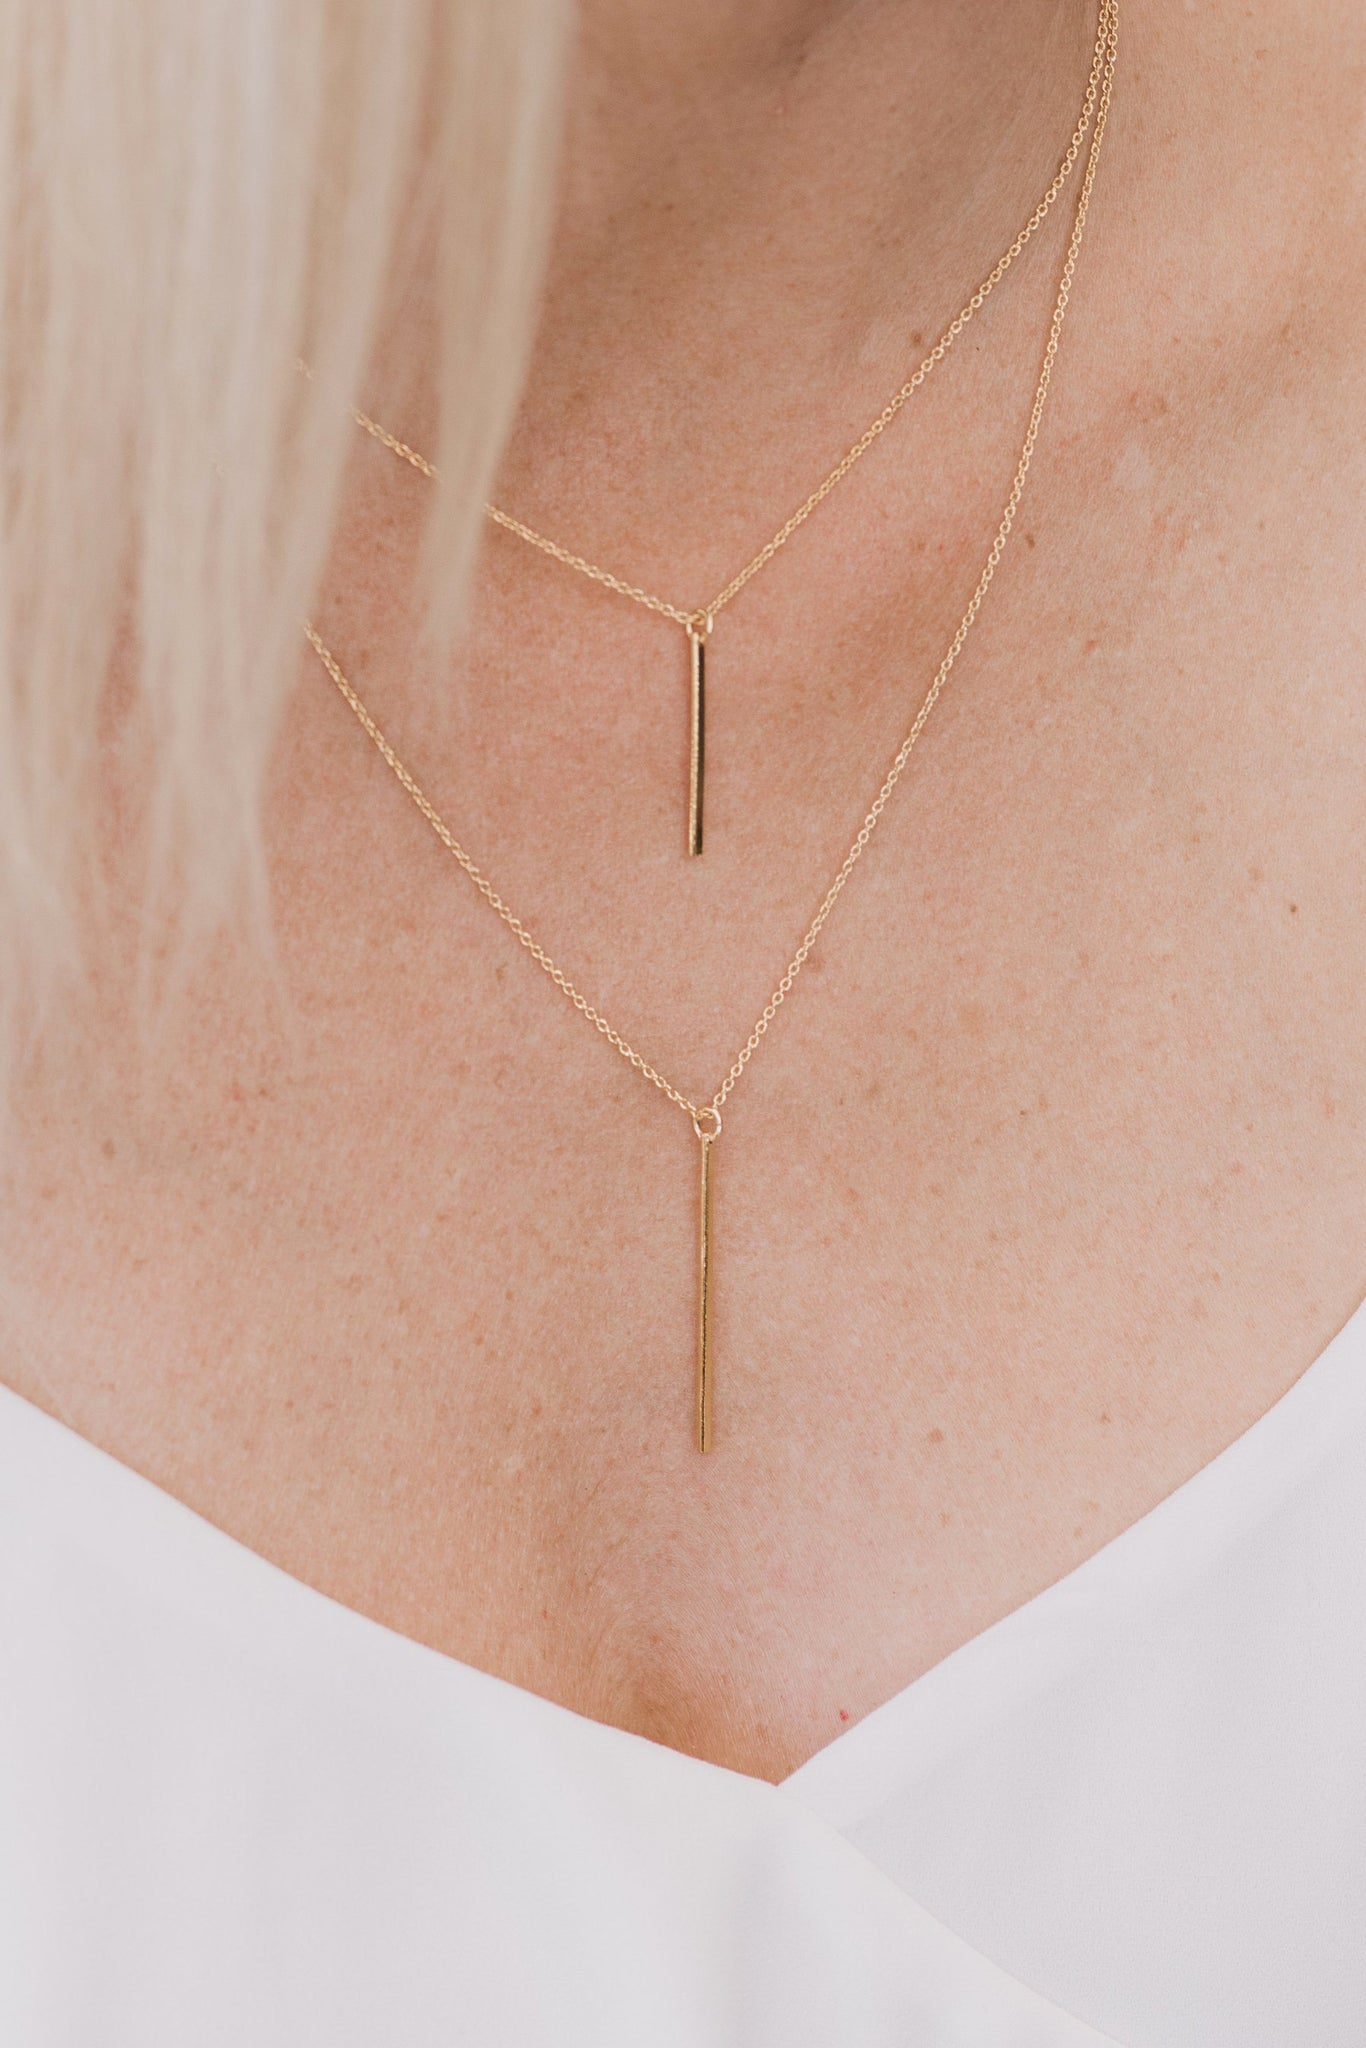 Handcrafted 14K Gold Bar Layered Necklace